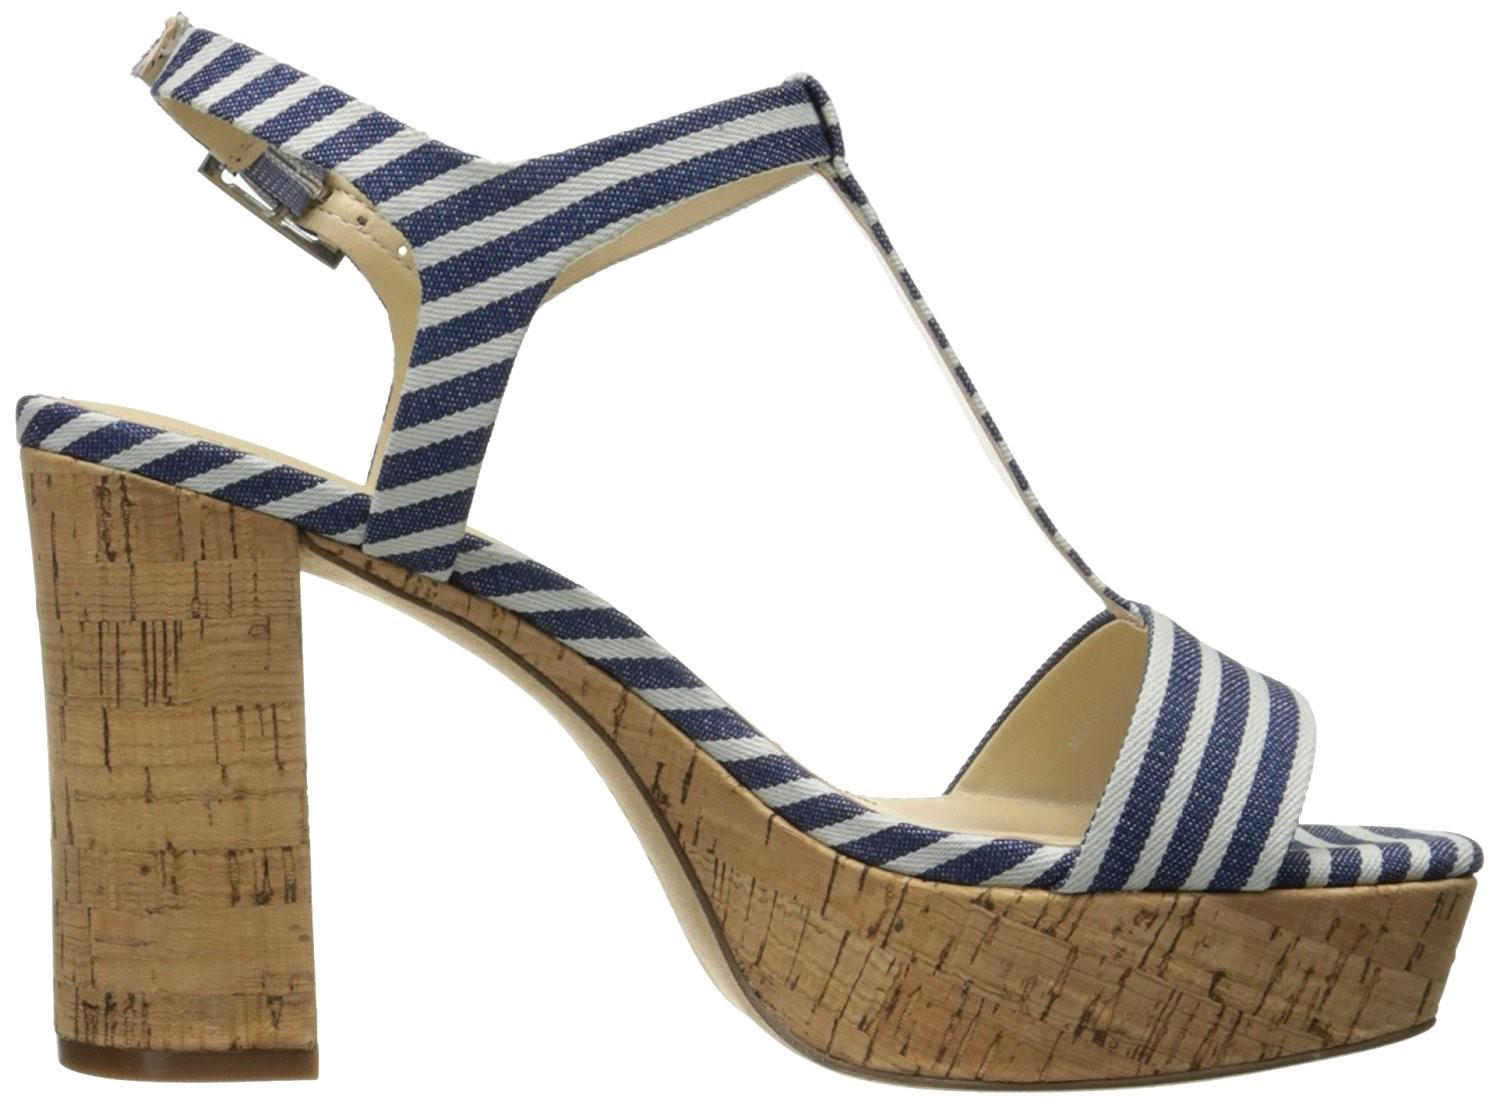 9f015f16ae5c Charles David - Multicolor Charles By Miller Open Toe Casual T-strap Sandals  - Lyst. View fullscreen